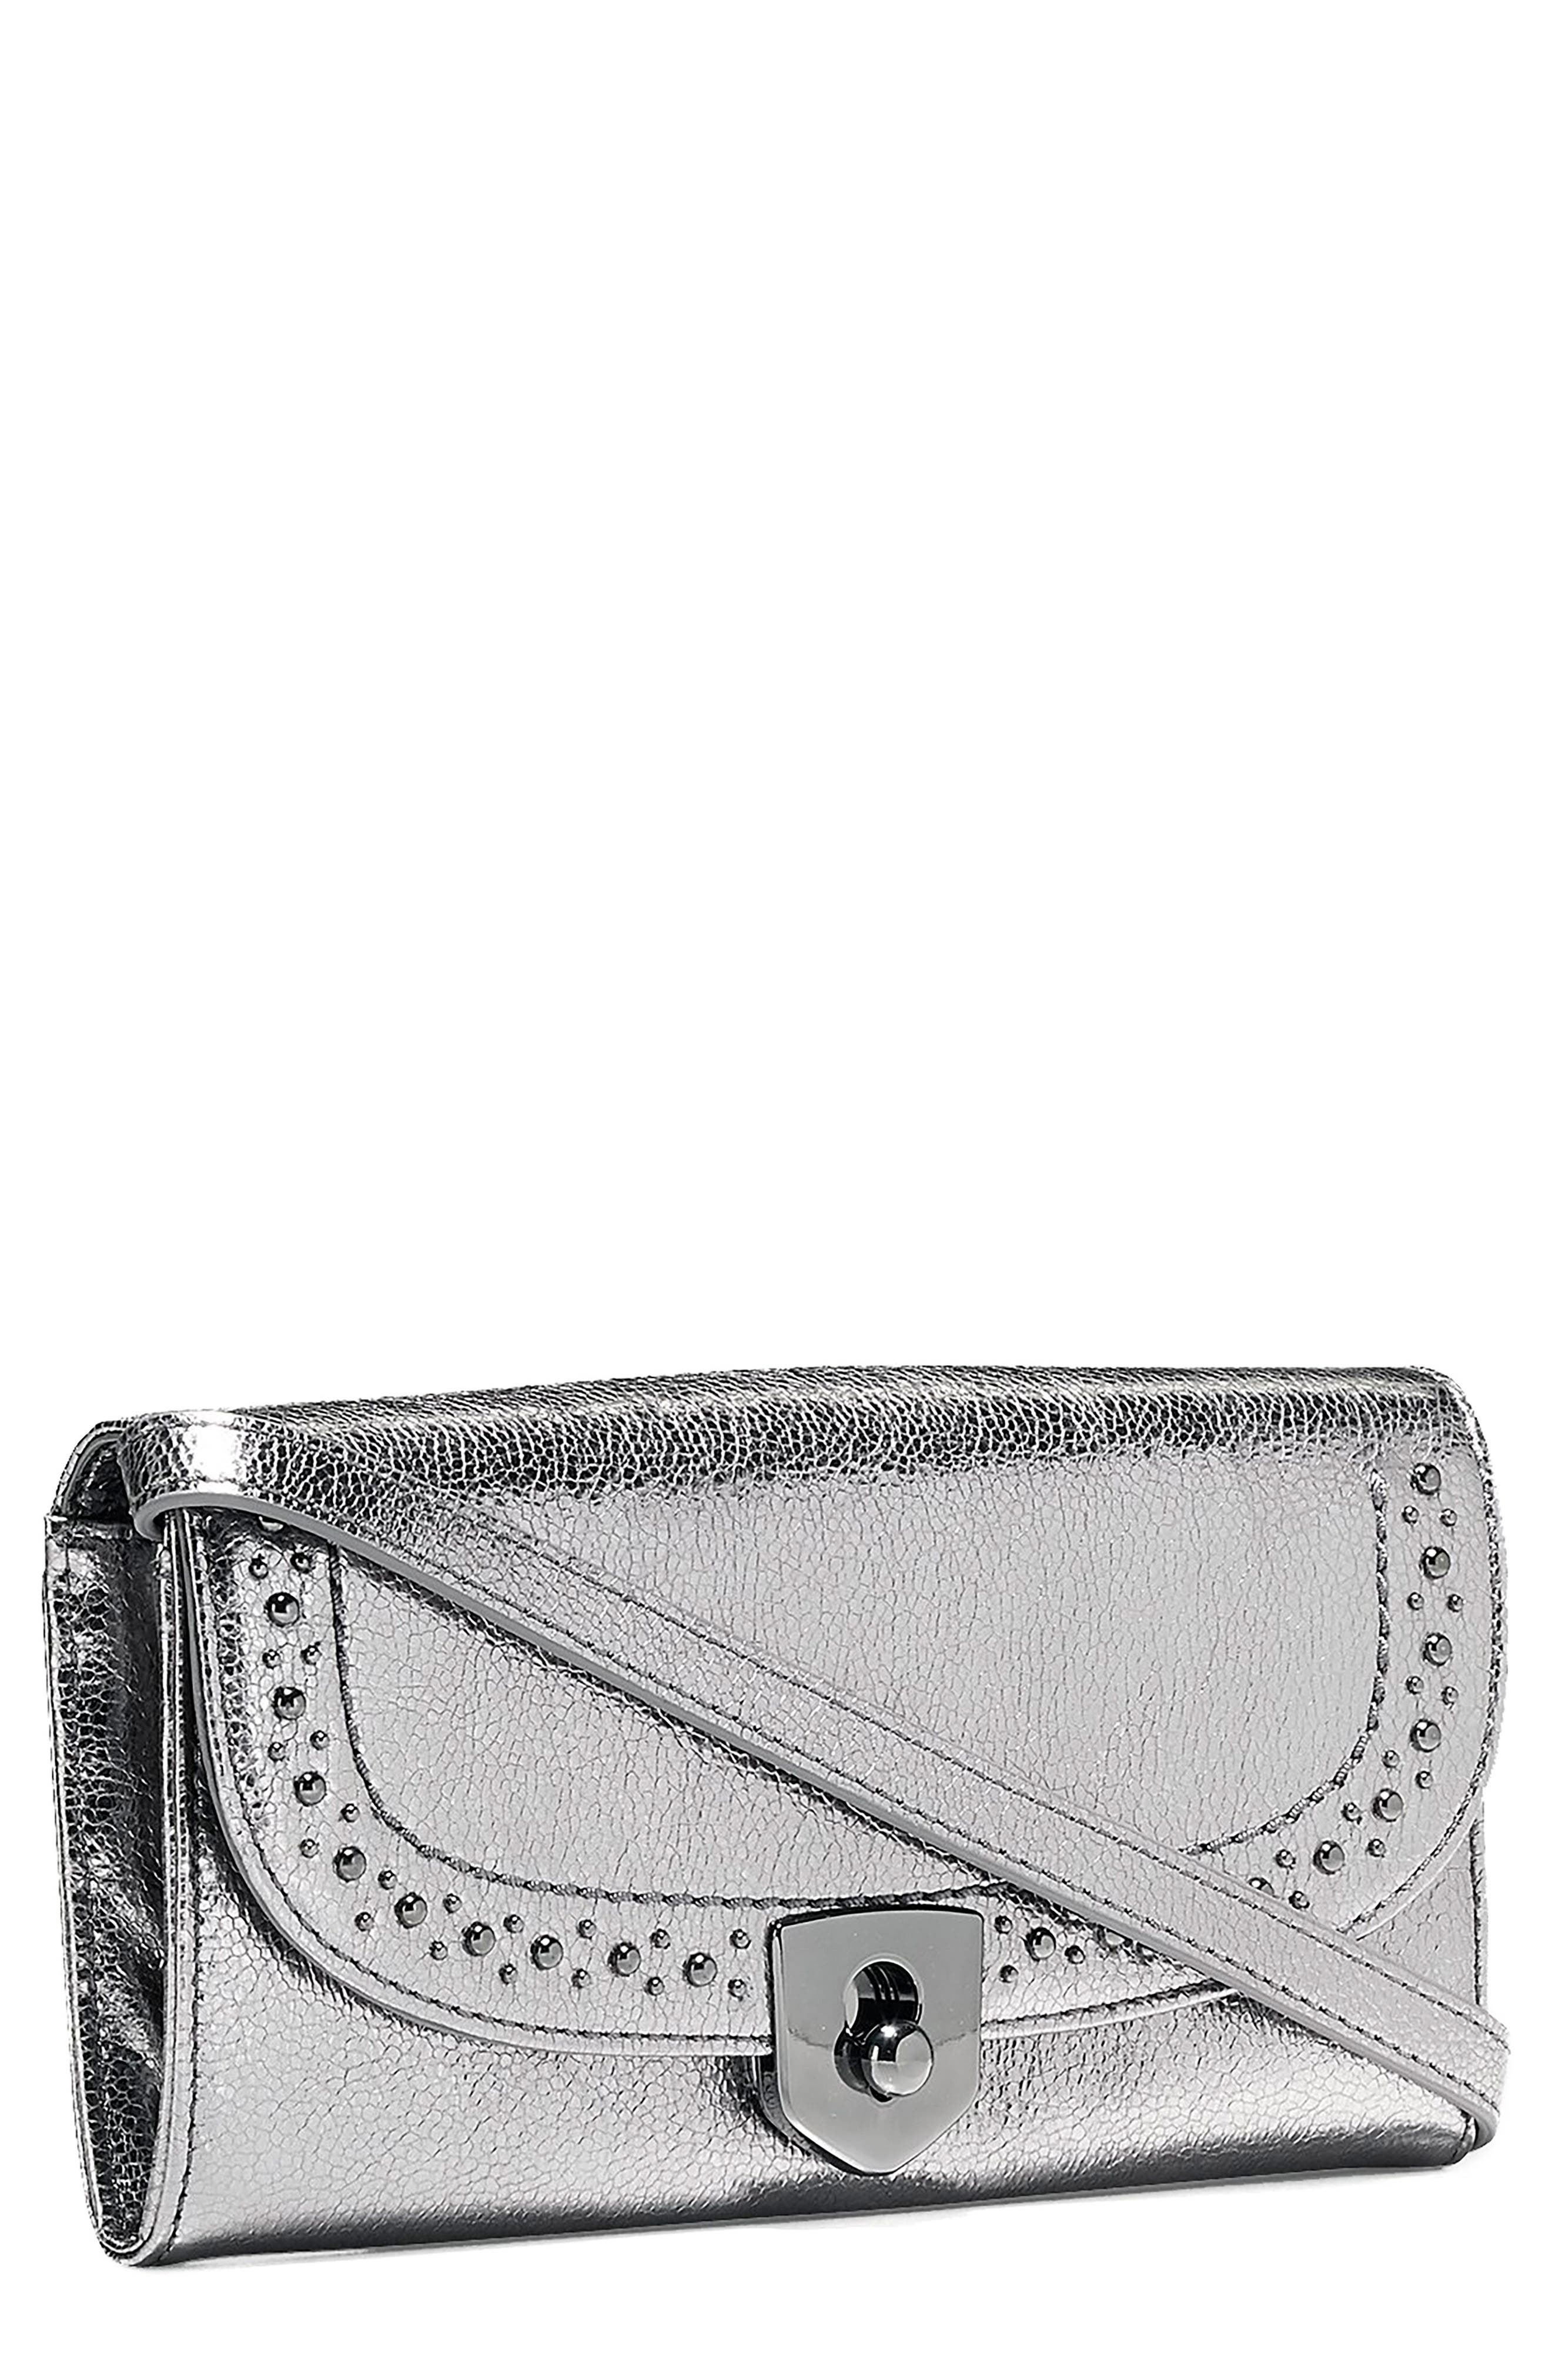 Marli Studded Metallic Leather Convertible Smartphone Clutch,                         Main,                         color, Anthracite